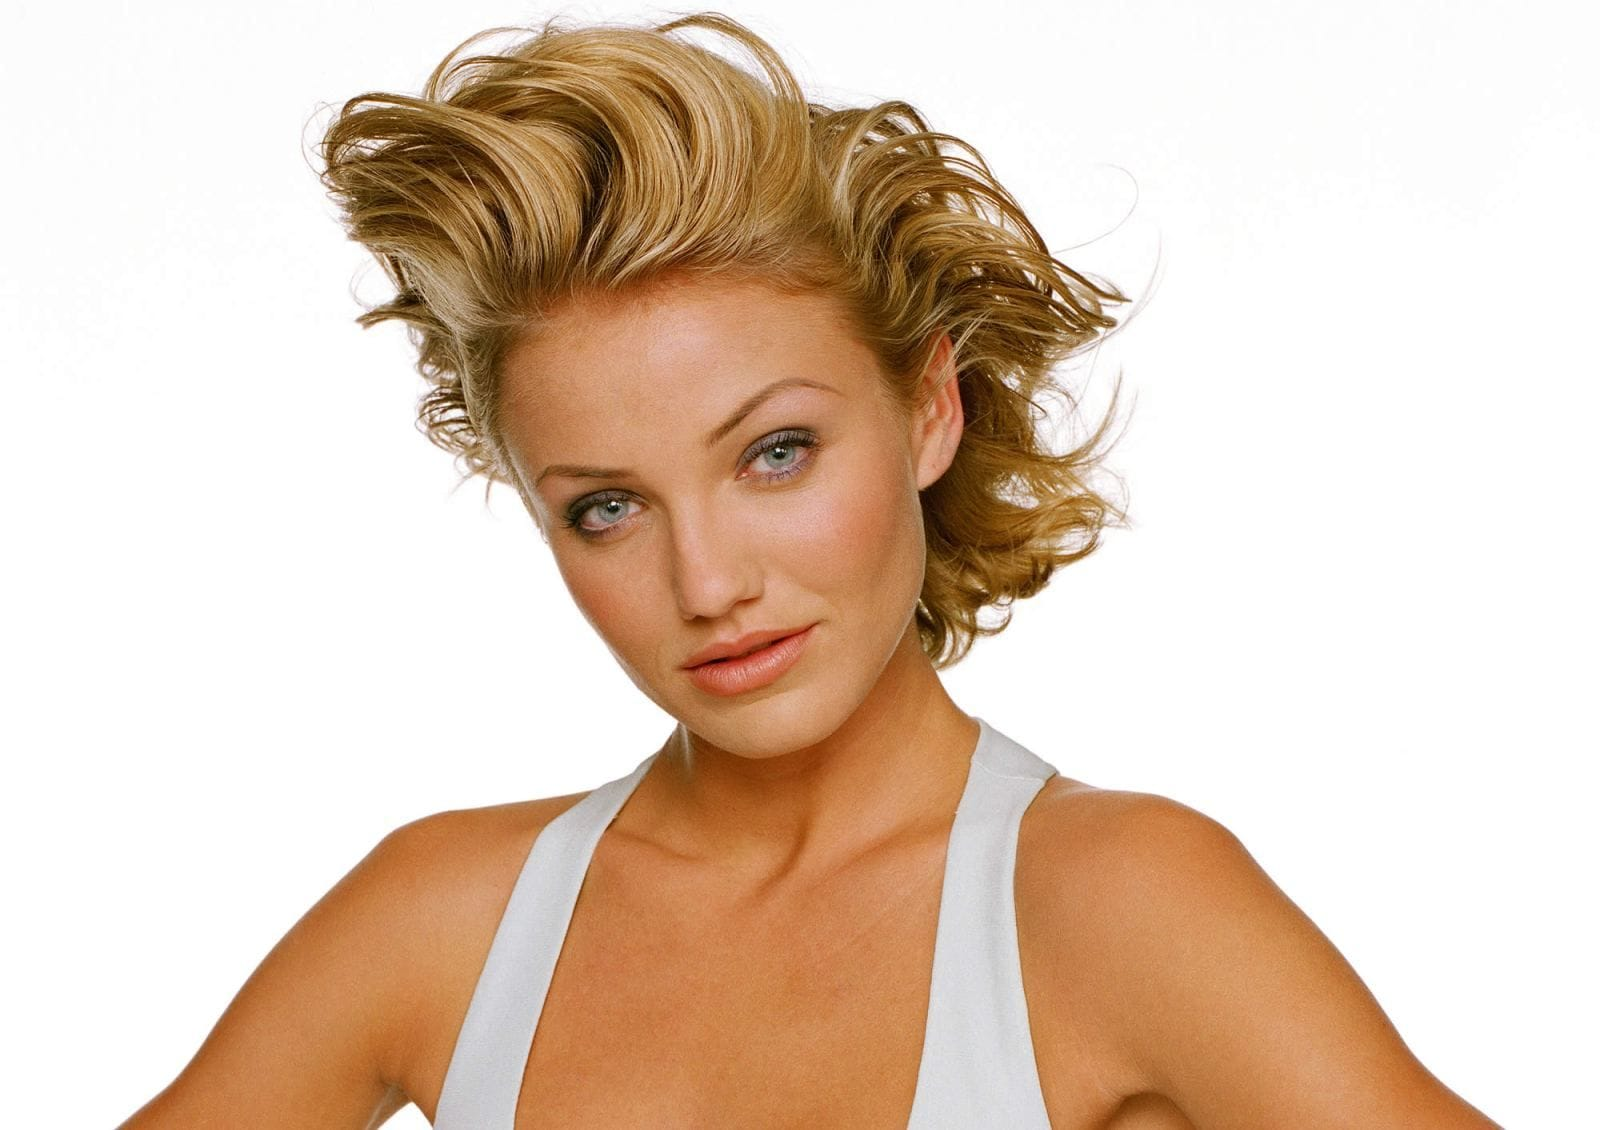 Cameron Diaz full hd wallpapers